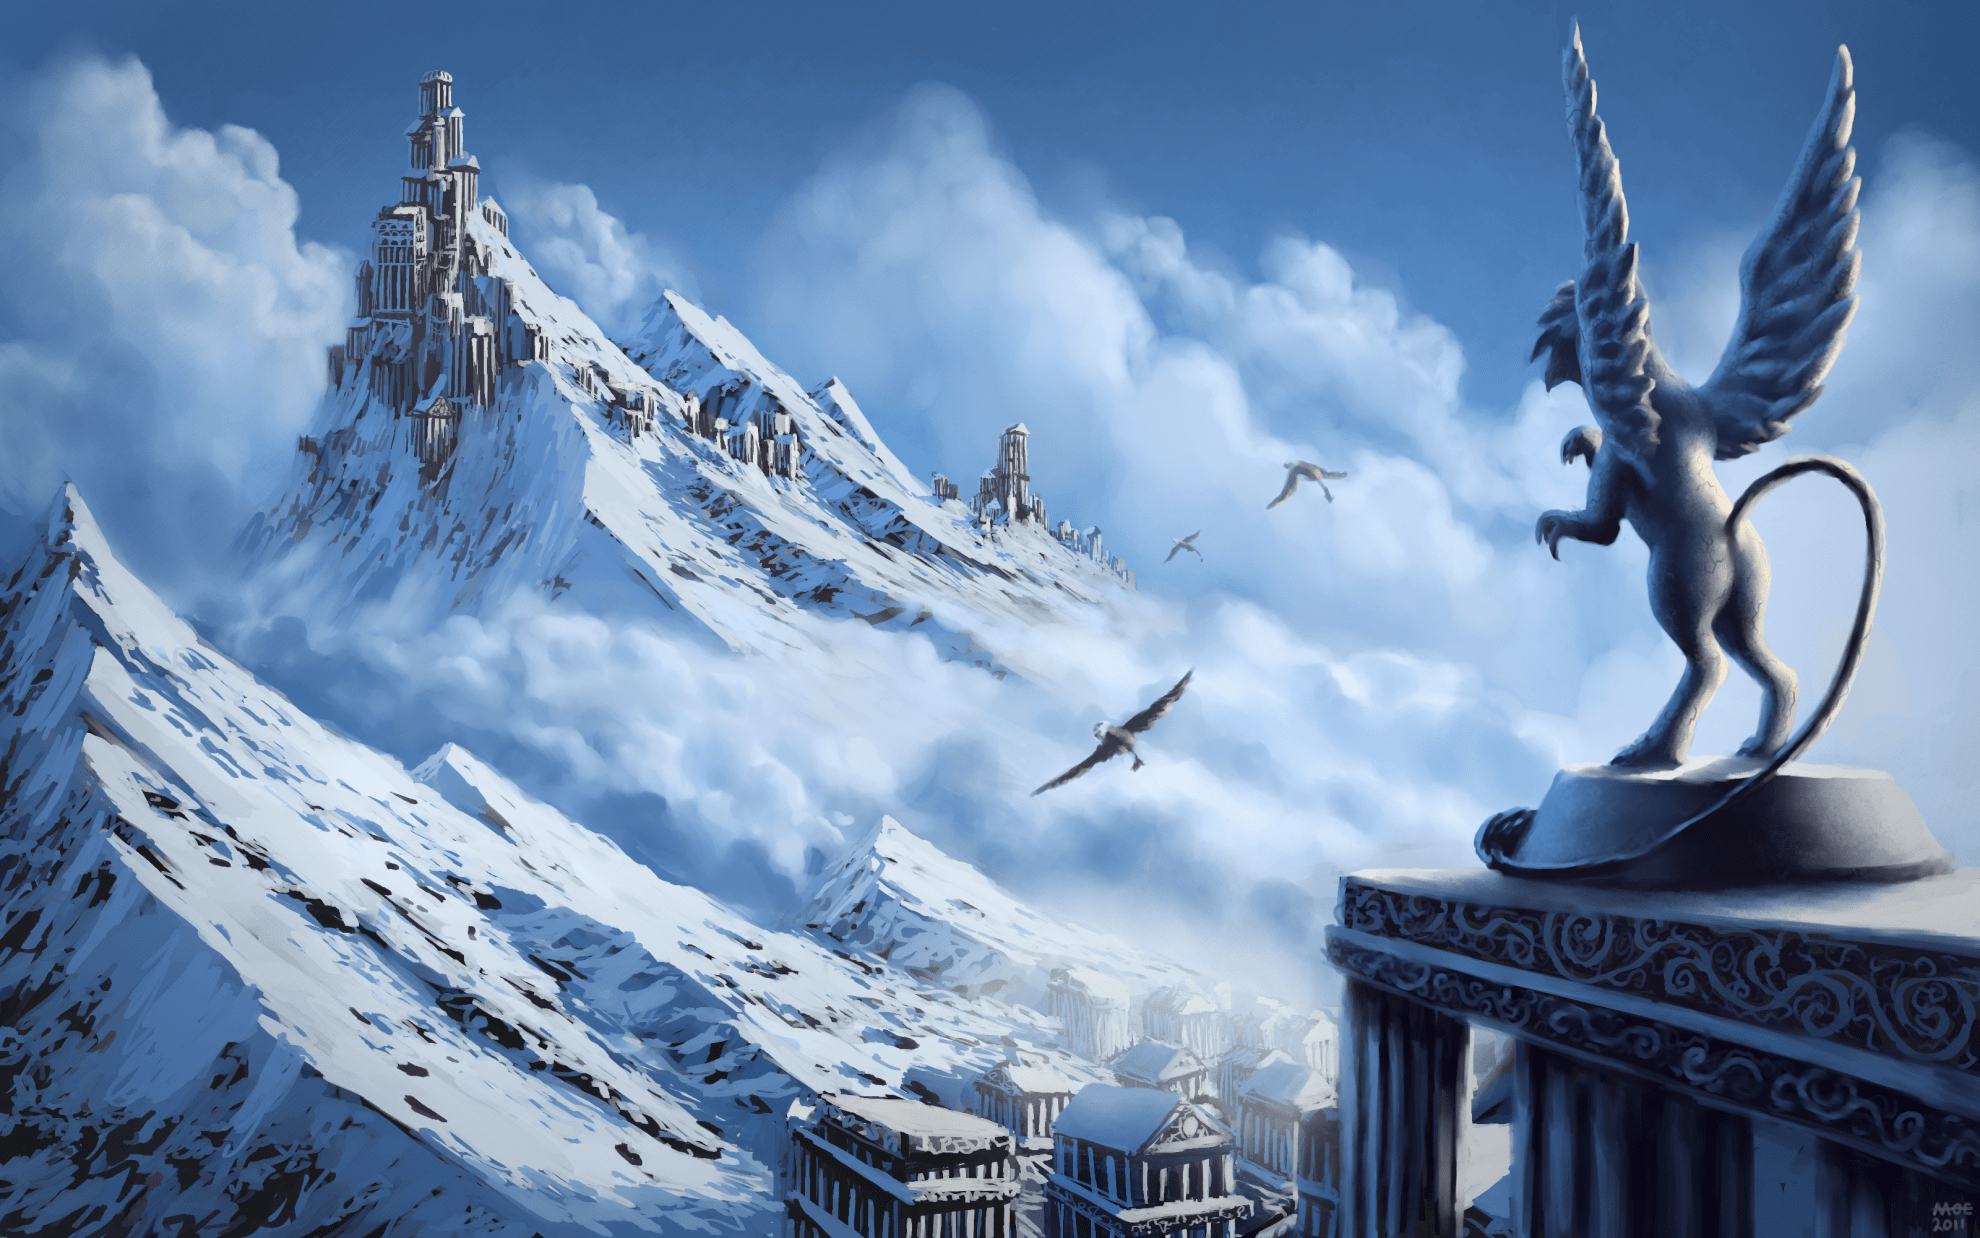 City Wallpaper Iphone X Griffin Full Hd Wallpaper And Background Image 1980x1238